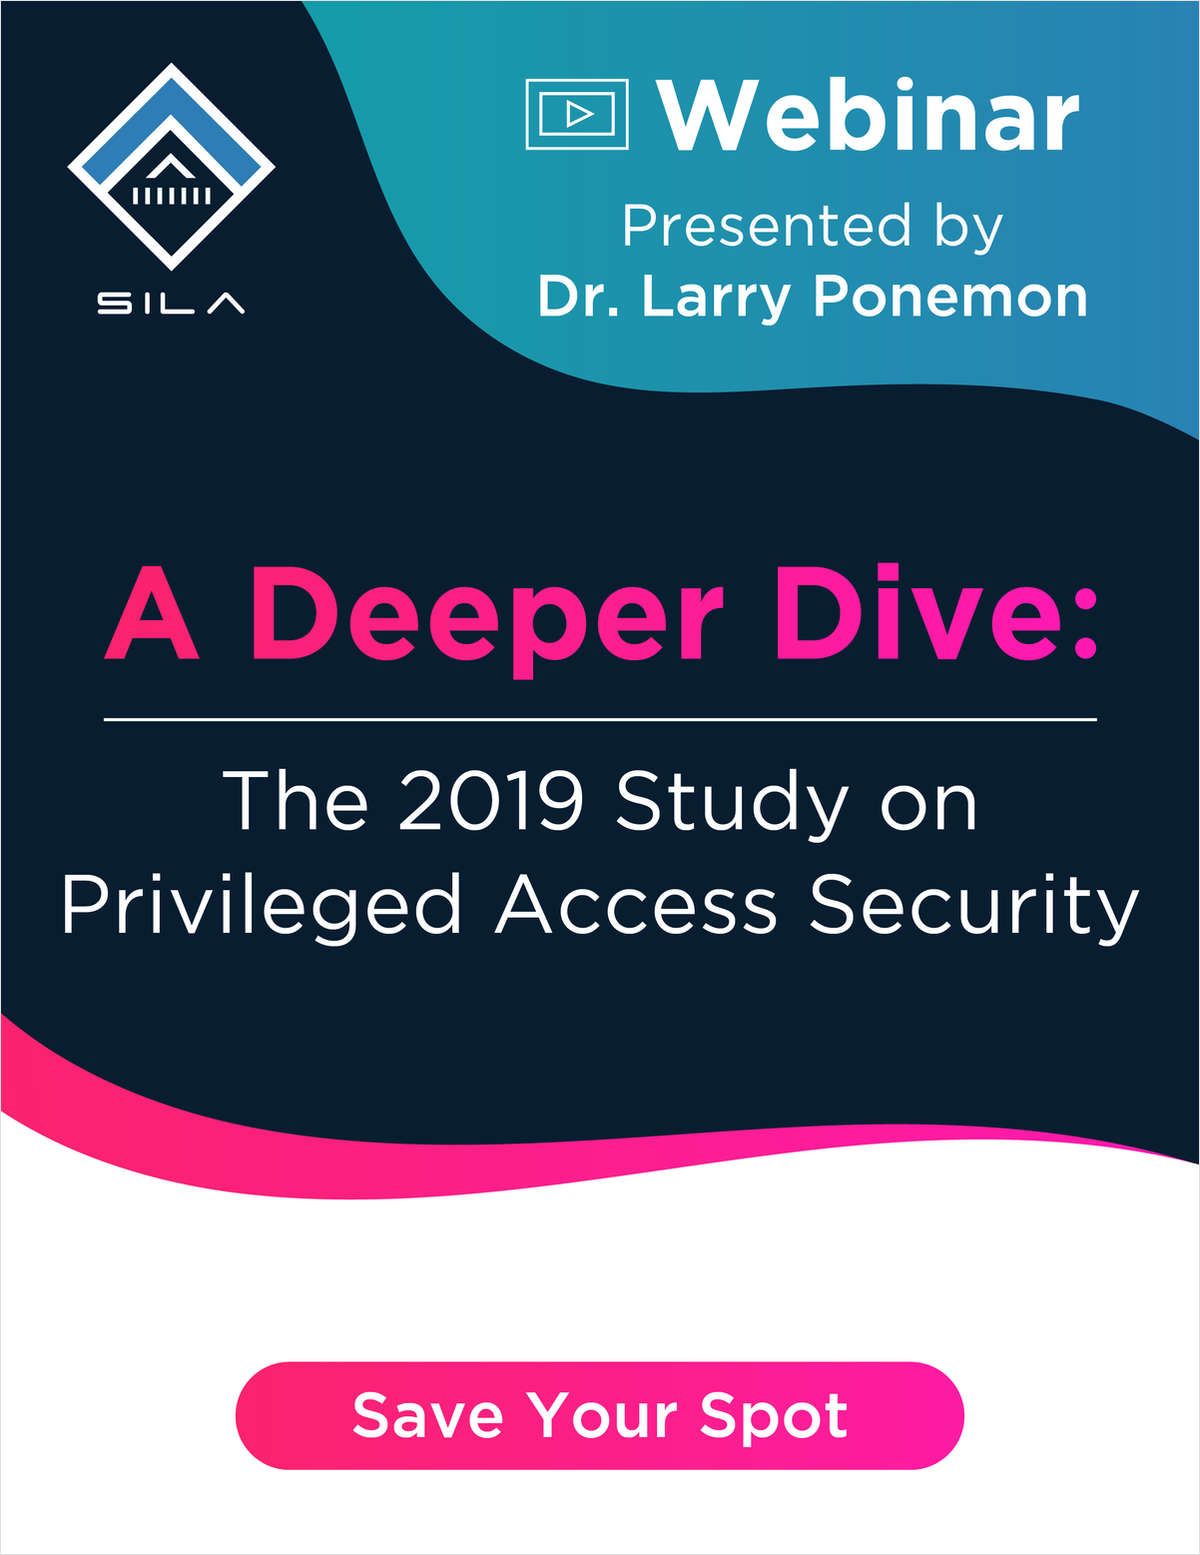 A Deeper Dive: The 2019 Study on Privileged Access Security  Presented by Dr. Larry Ponemon and Sila